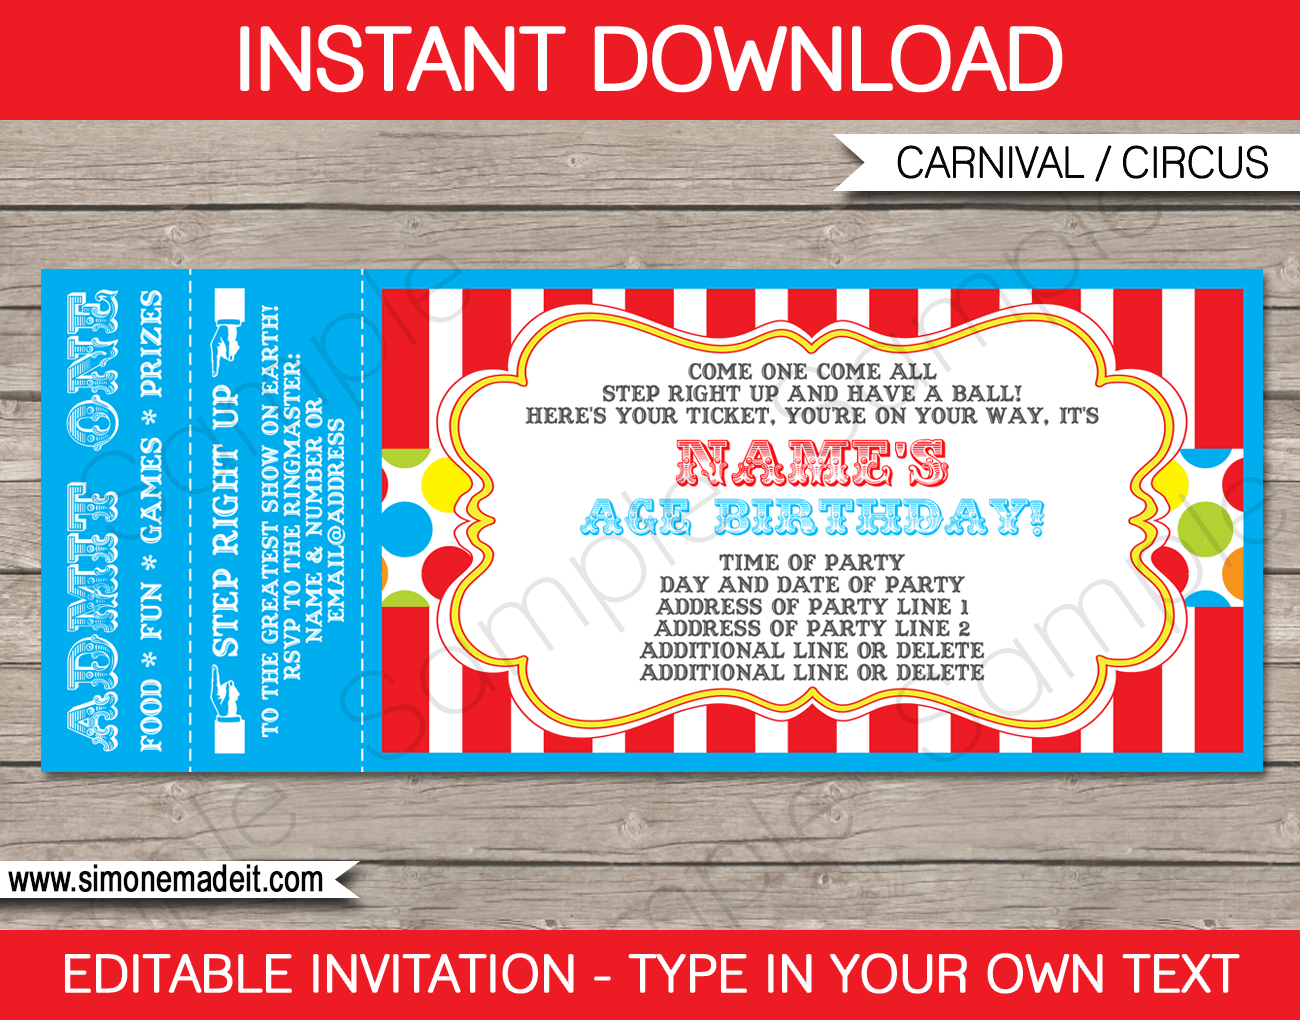 Carnival Party Ticket Invitation Template | Carnival Or Circus - Free Printable Ticket Invitation Templates